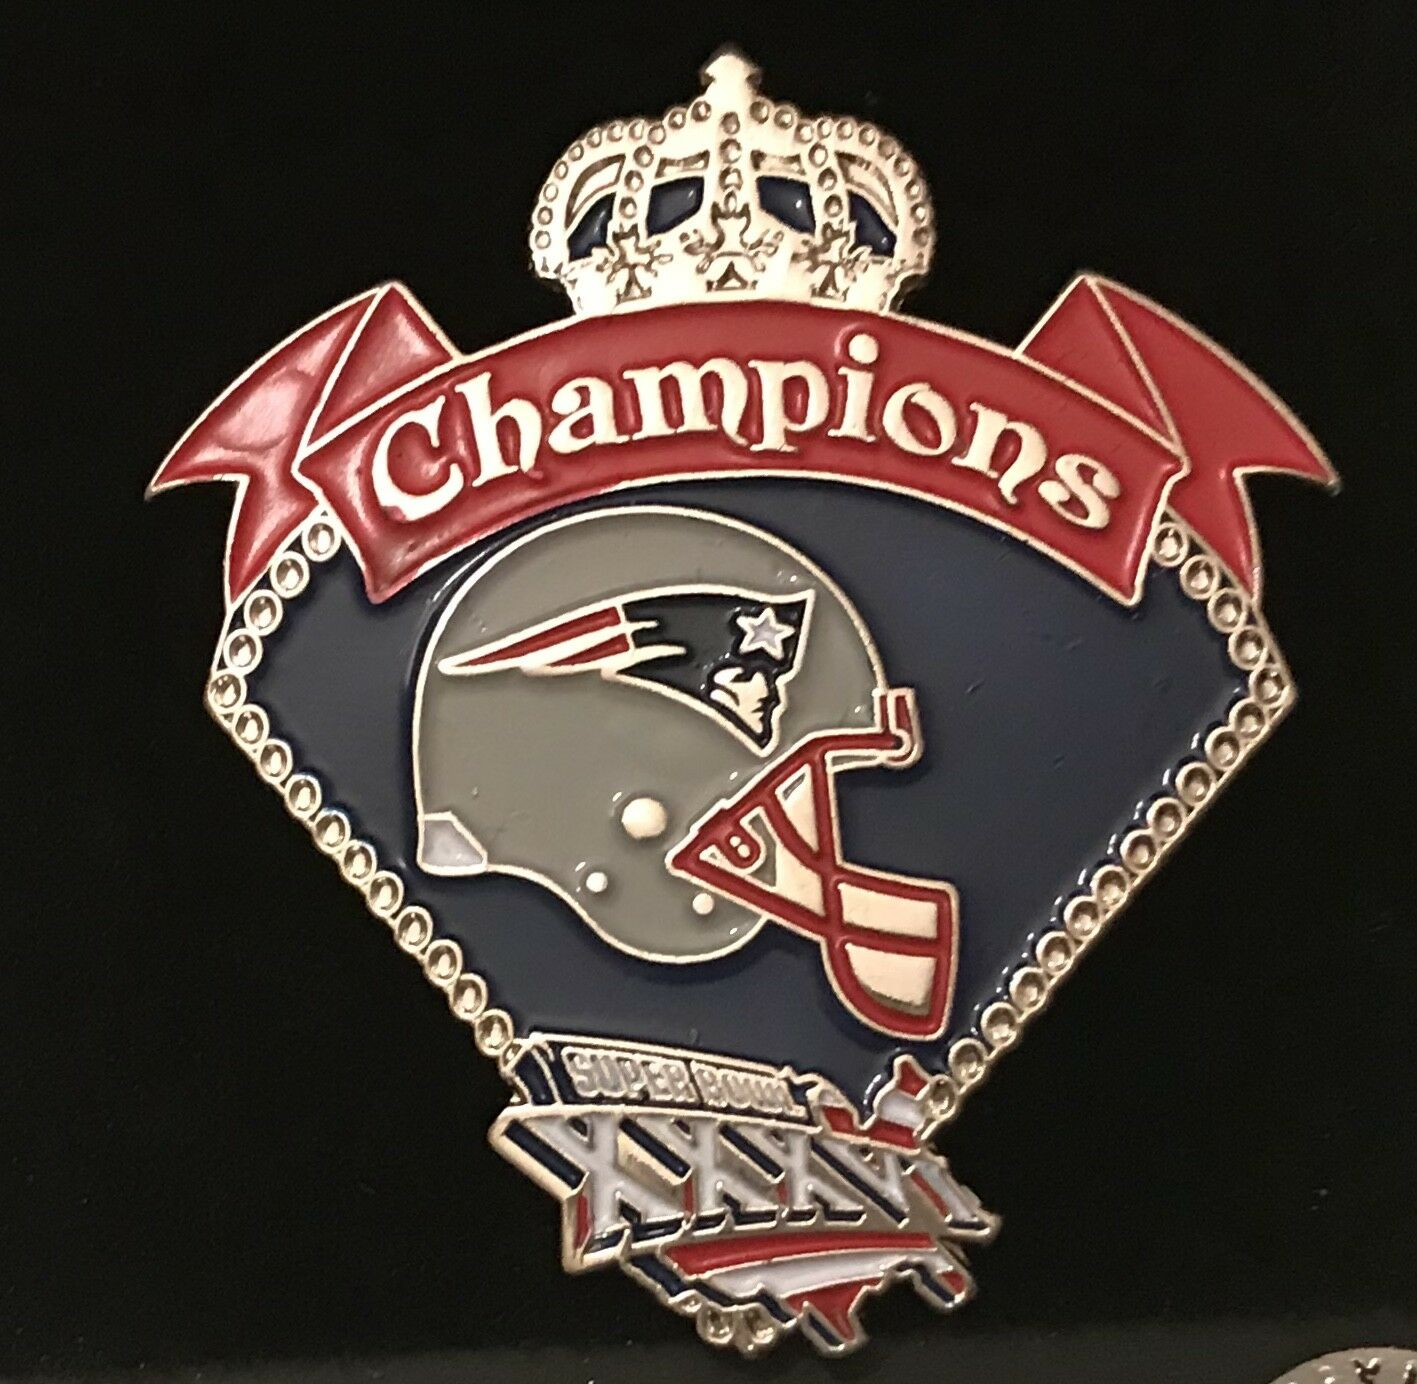 new england patriots super bowl 36 champions